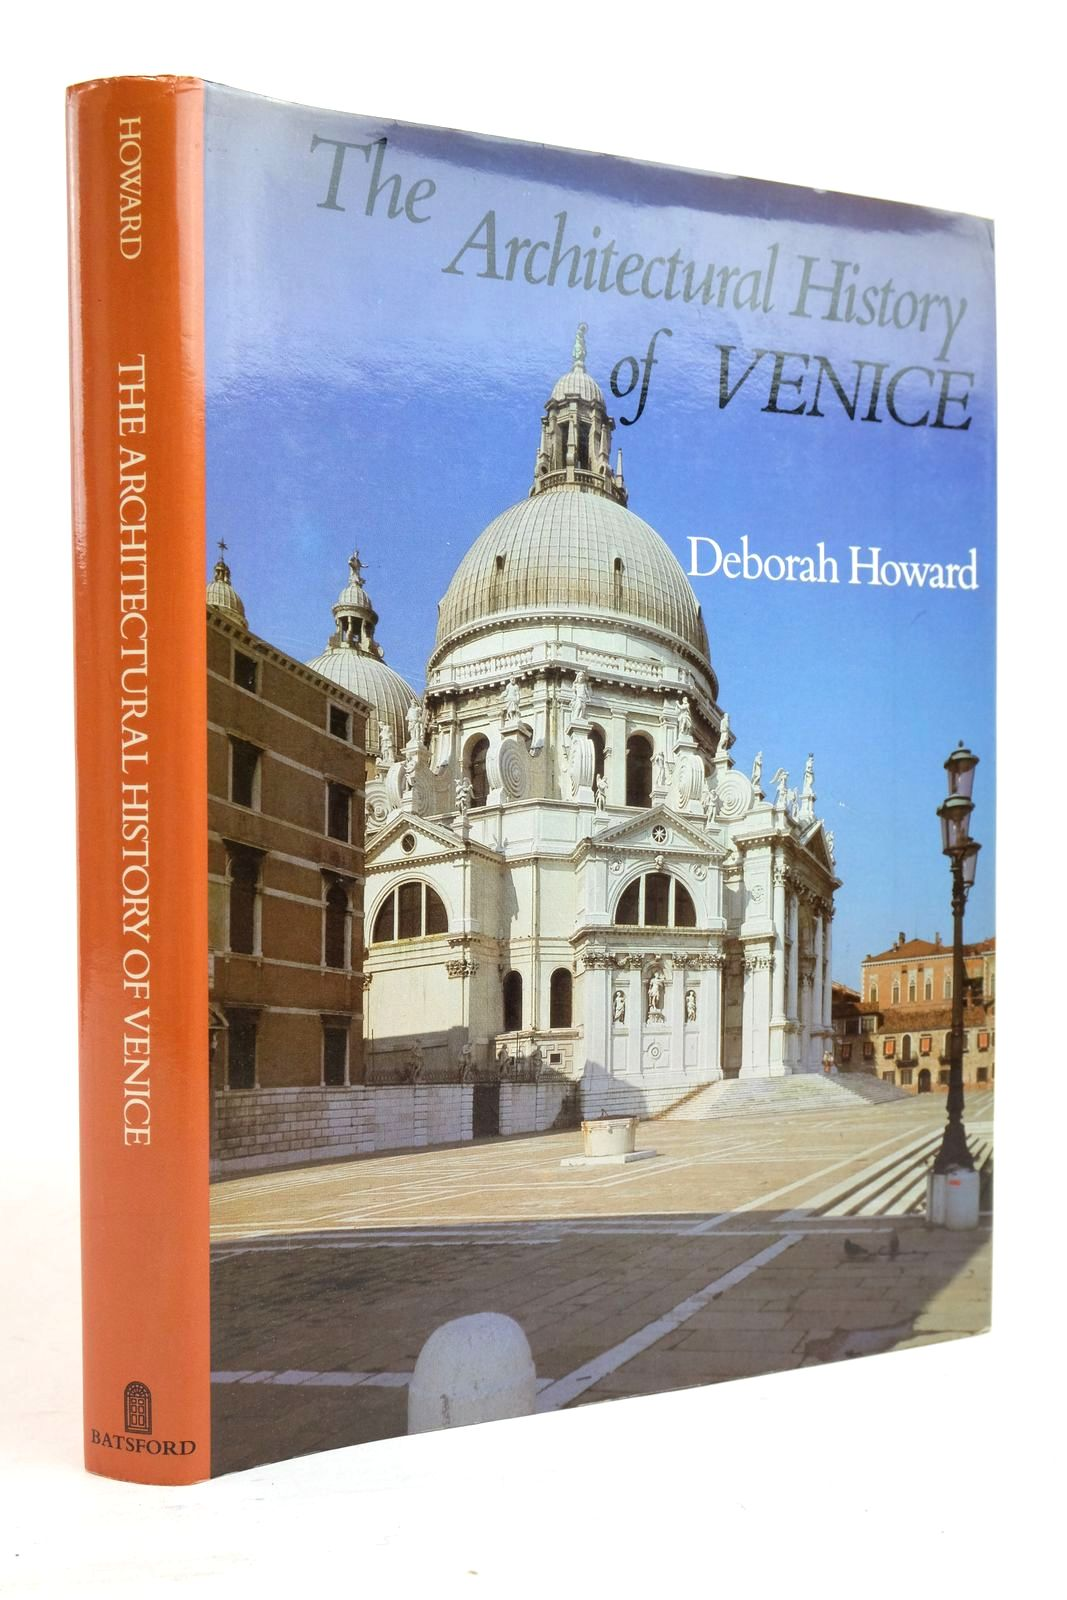 Photo of THE ARCHITECTURAL HISTORY OF VENICE written by Howard, Deborah published by B.T. Batsford Ltd. (STOCK CODE: 2134773)  for sale by Stella & Rose's Books